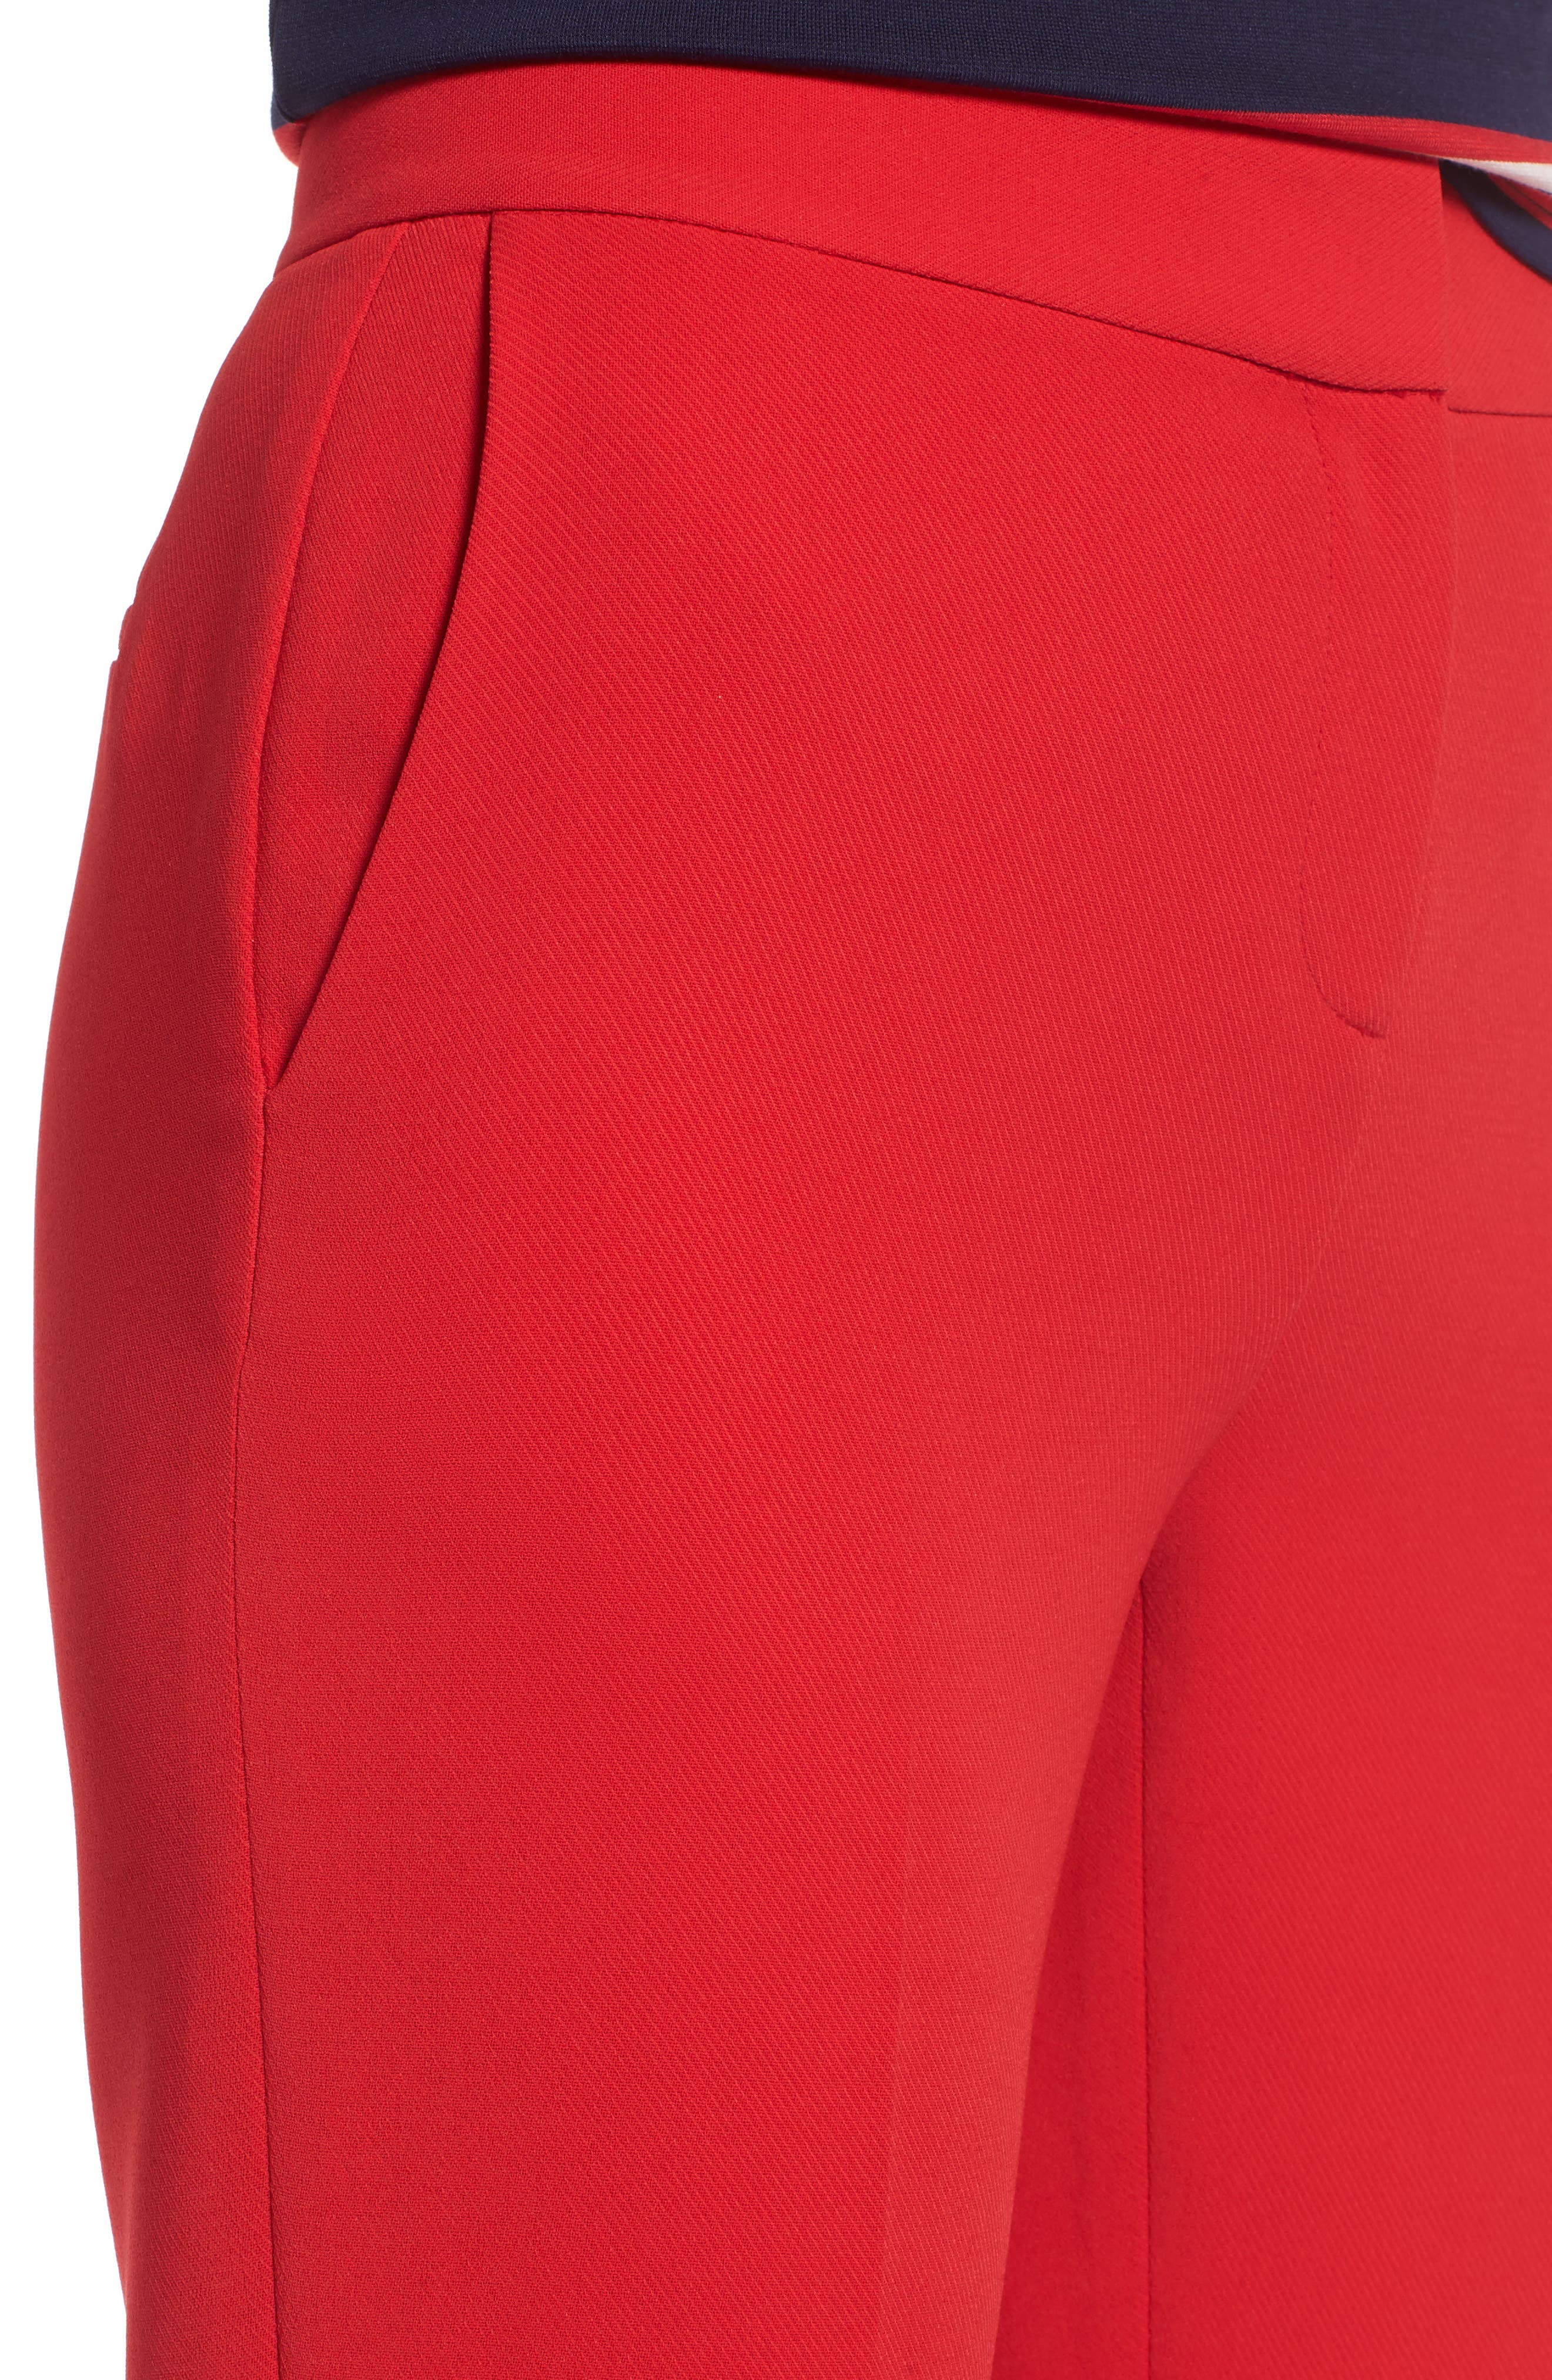 High Waist Straight Pants,                             Alternate thumbnail 4, color,                             Red Chinoise